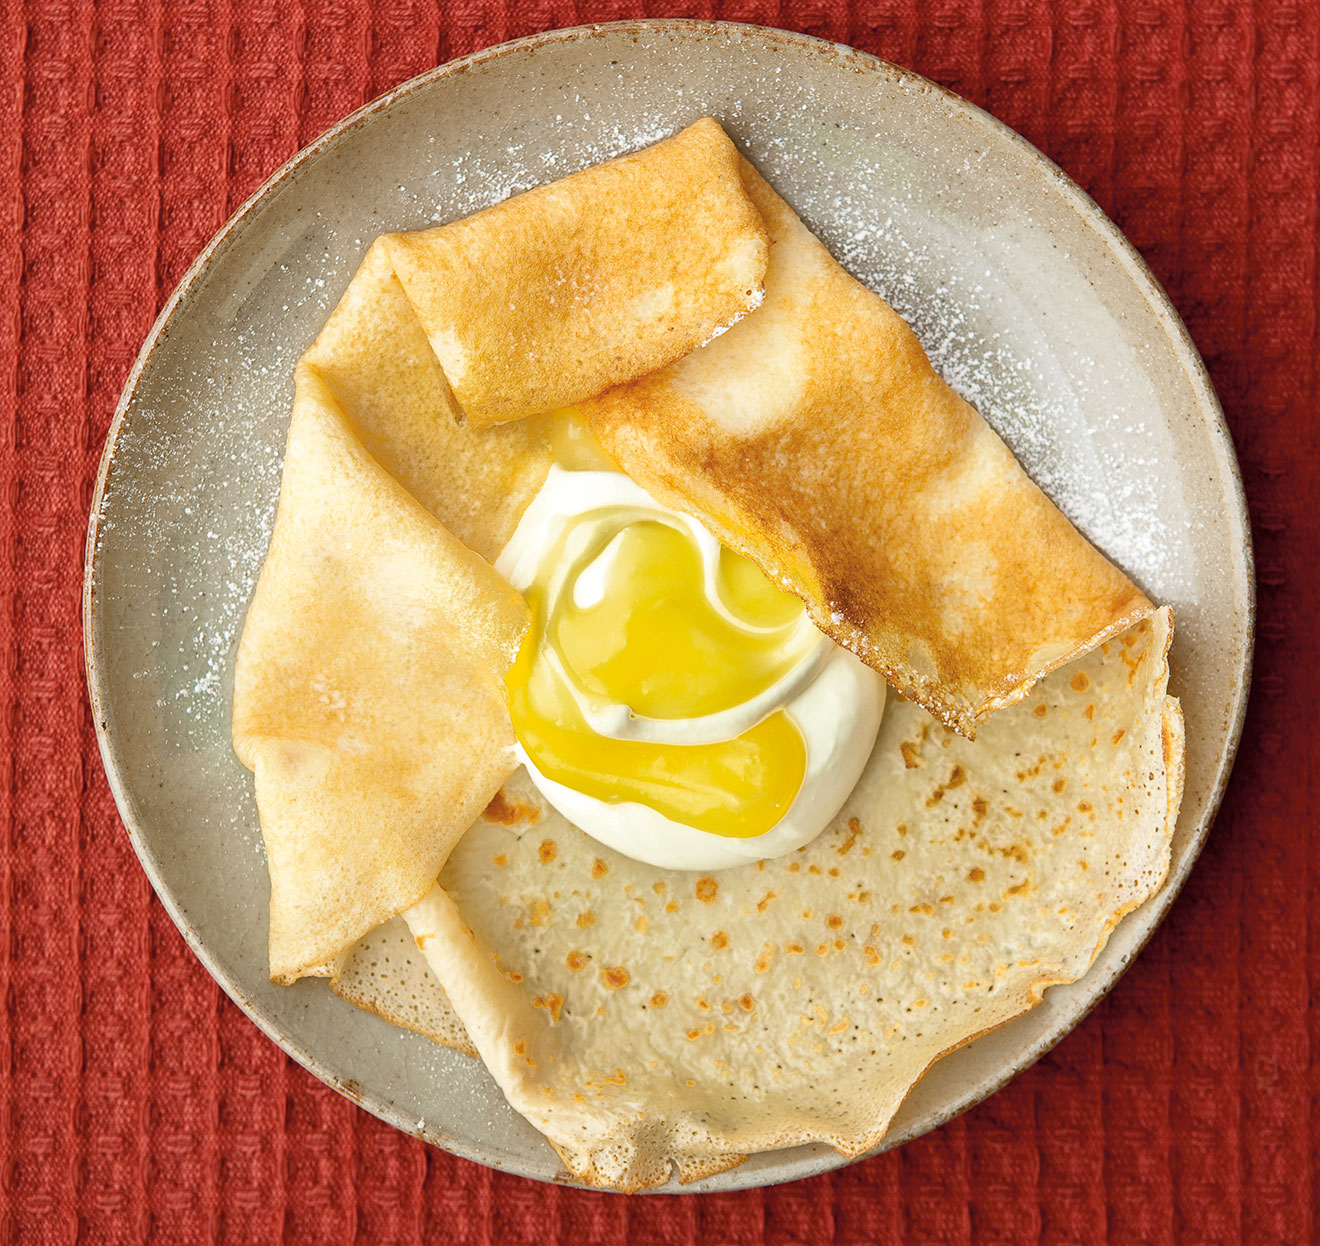 Six perfect and mouthwatering pancake recipes for Shrove Tuesday